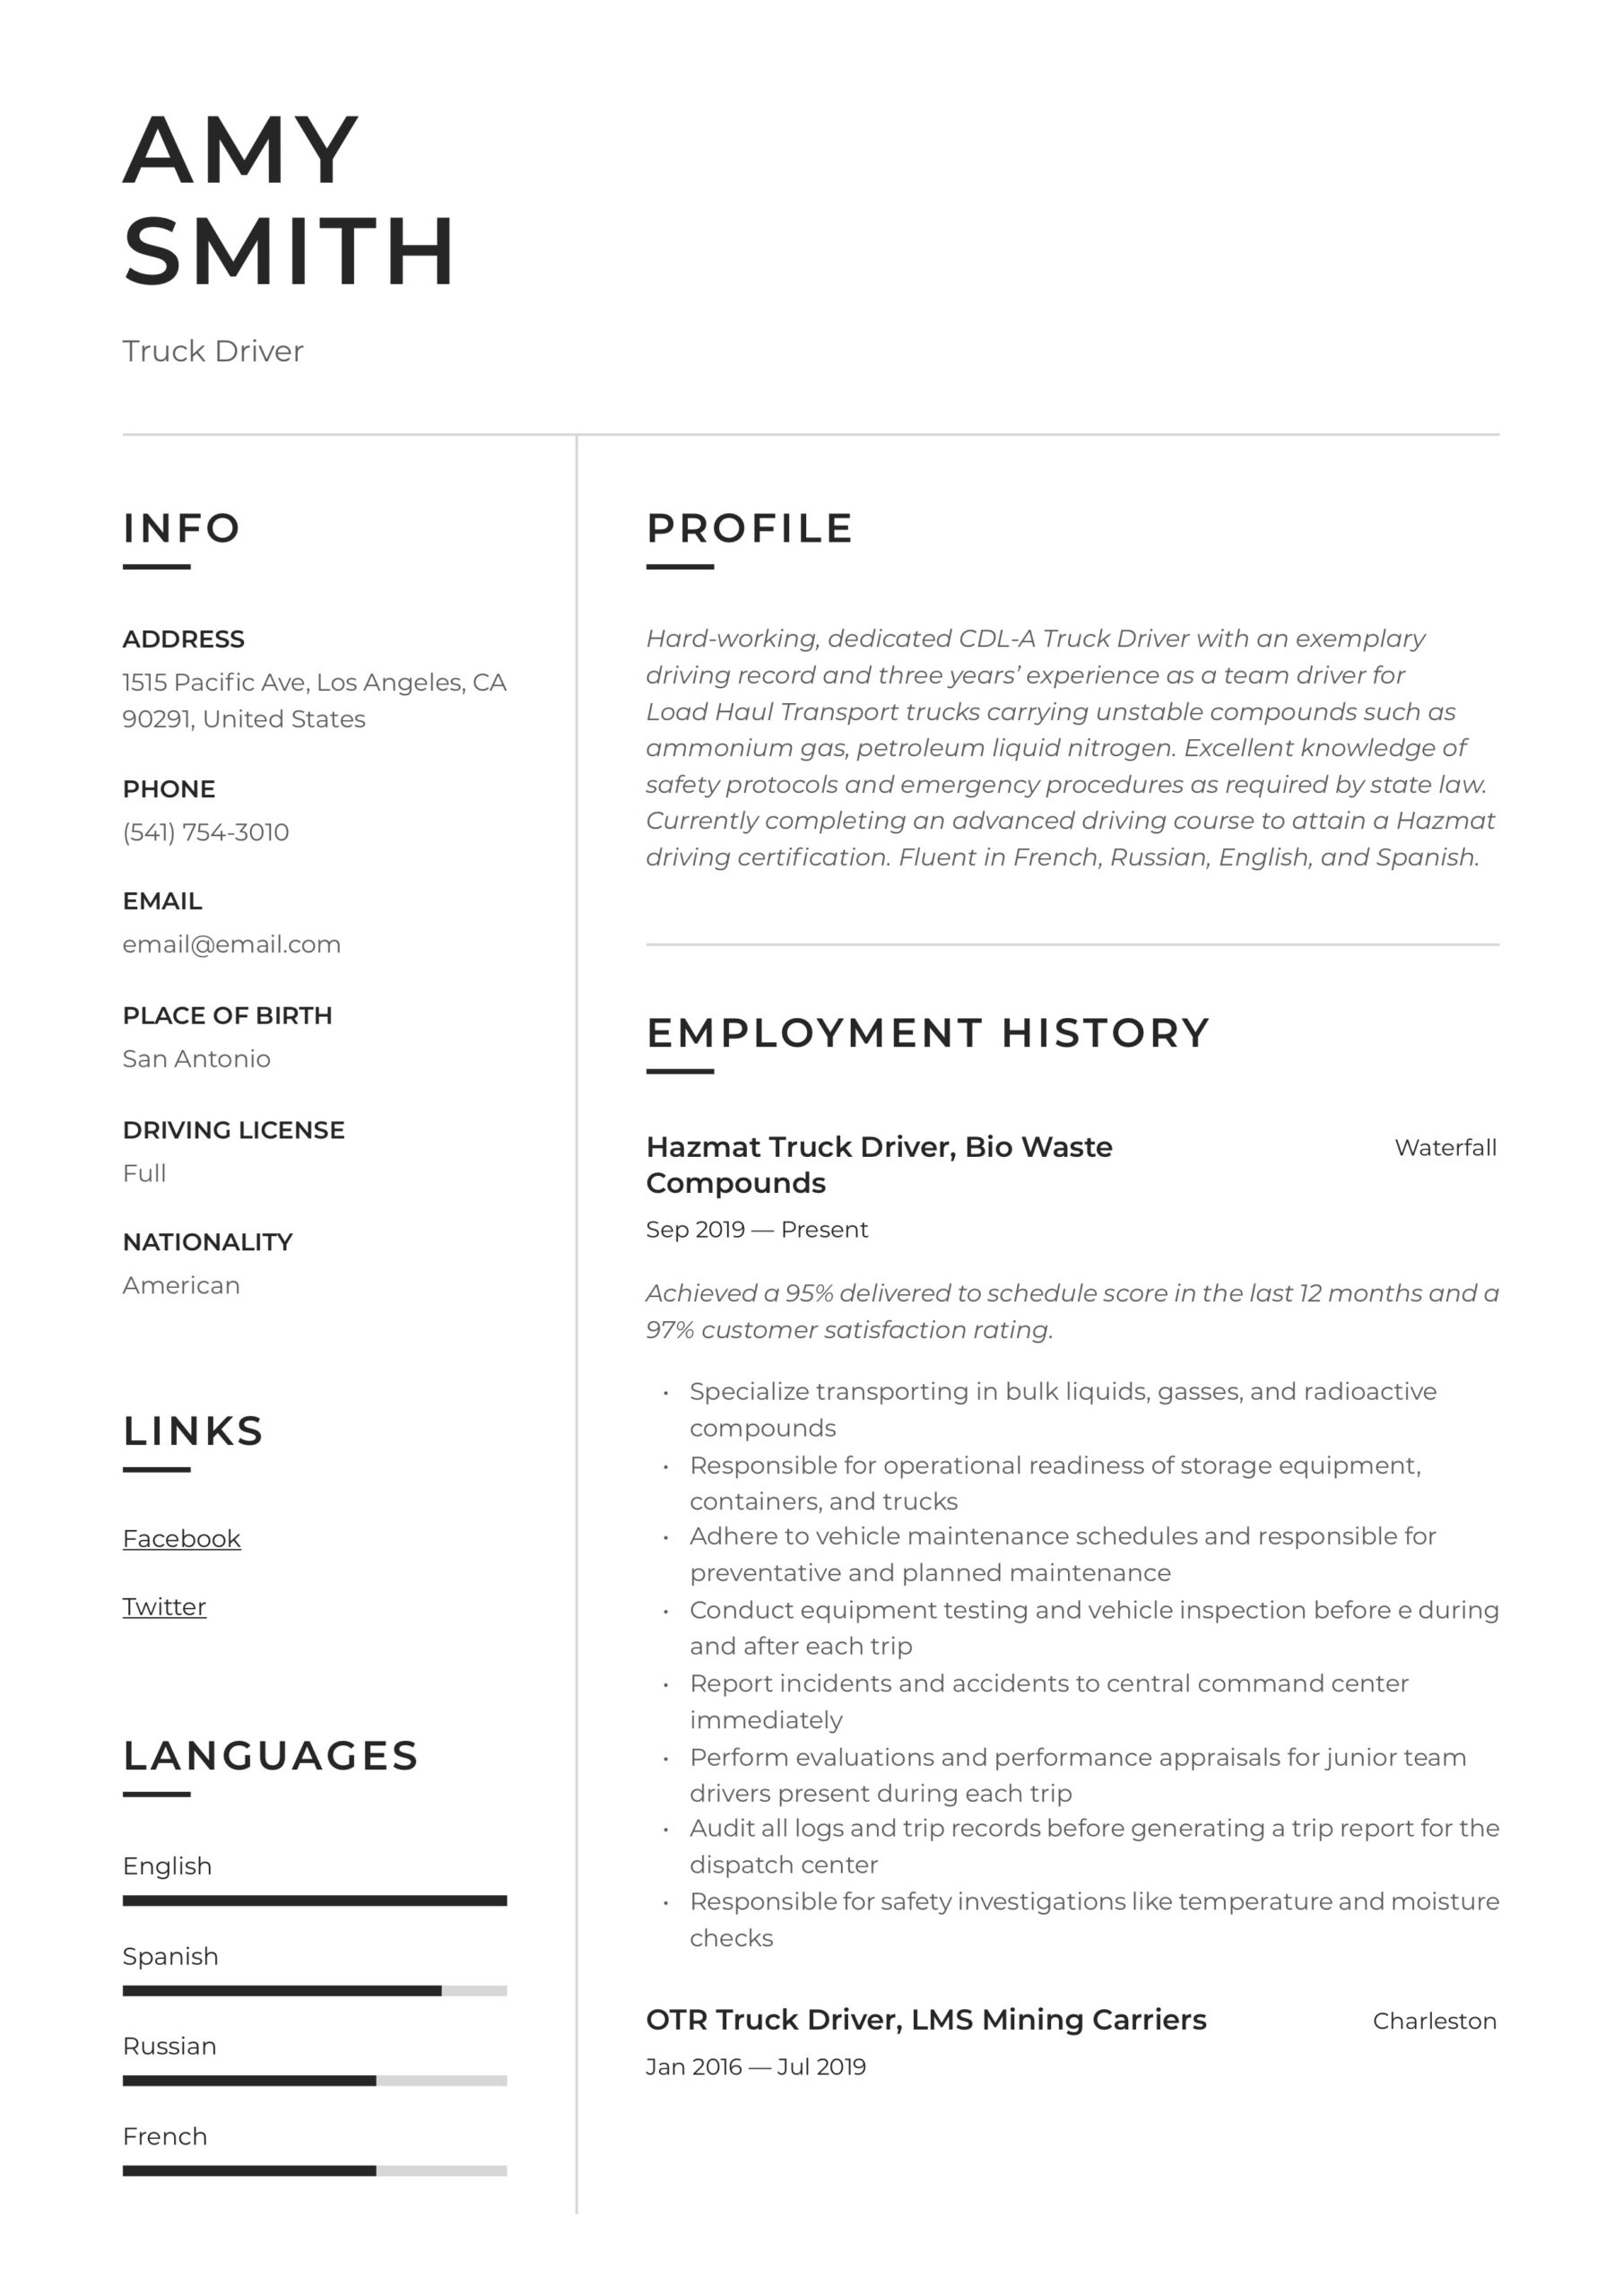 truck driver resume writing guide examples sample for lawyers child care provider public Resume Truck Driver Resume Sample Doc